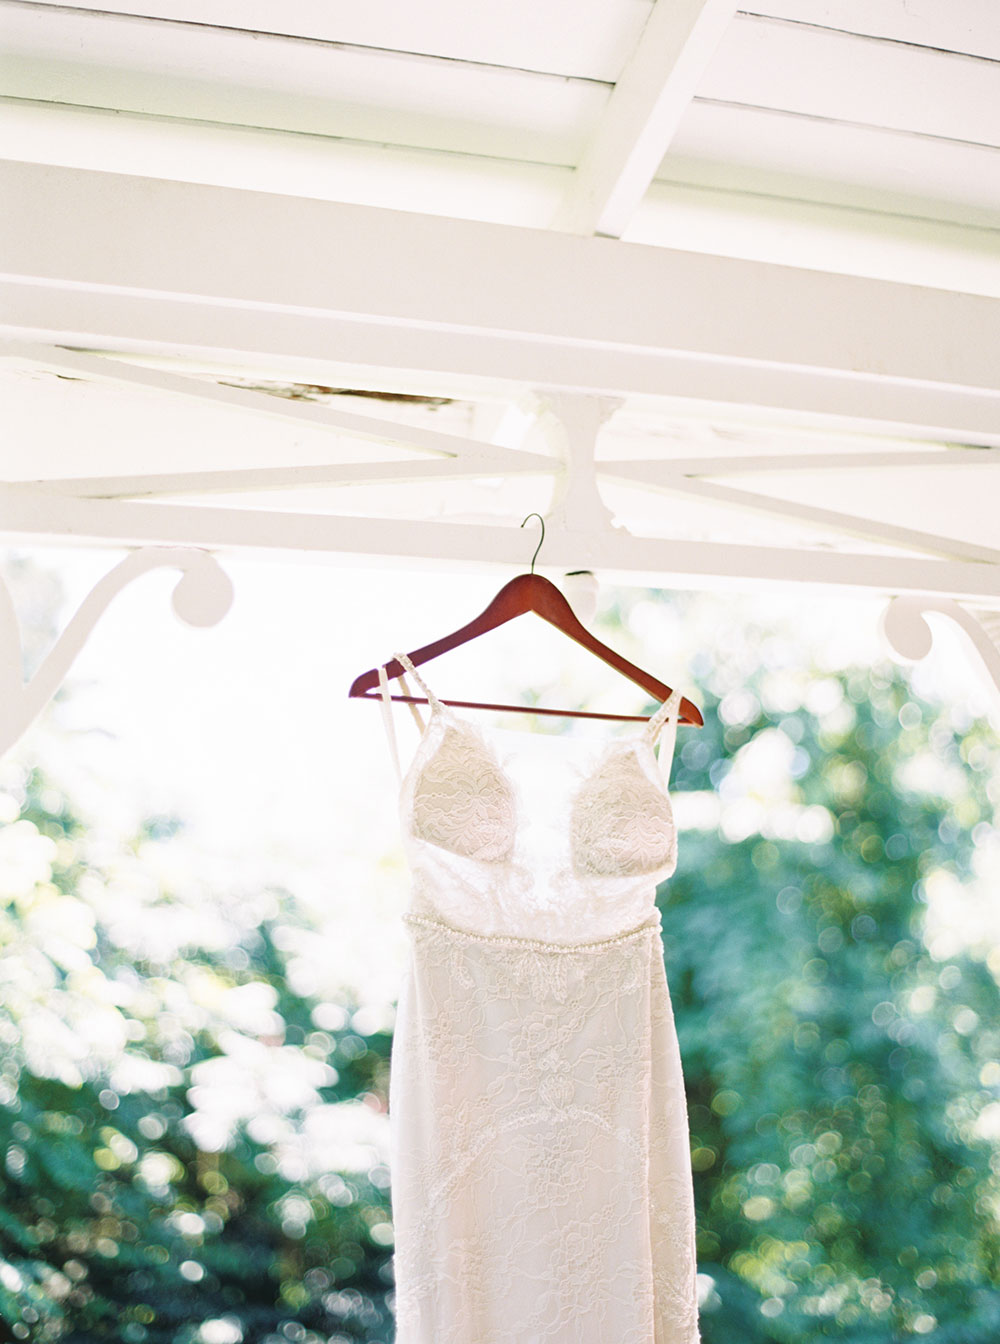 kurtz-orchards-wedding-gracewood-estate-niagara-on-the-lake-photo-by-katie-nicolle-photography-0002.JPG